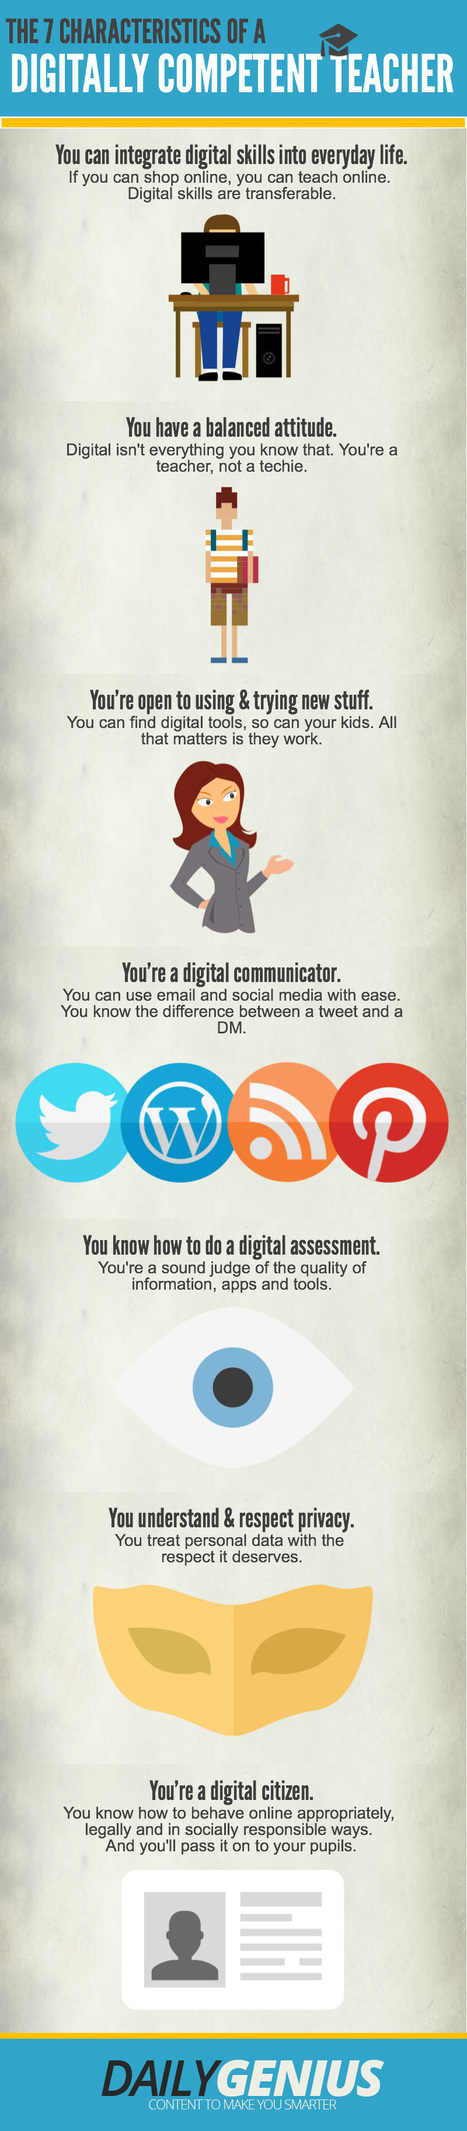 The Characteristics of a Digitally Competent Teacher Infographic | E-learning | Scoop.it